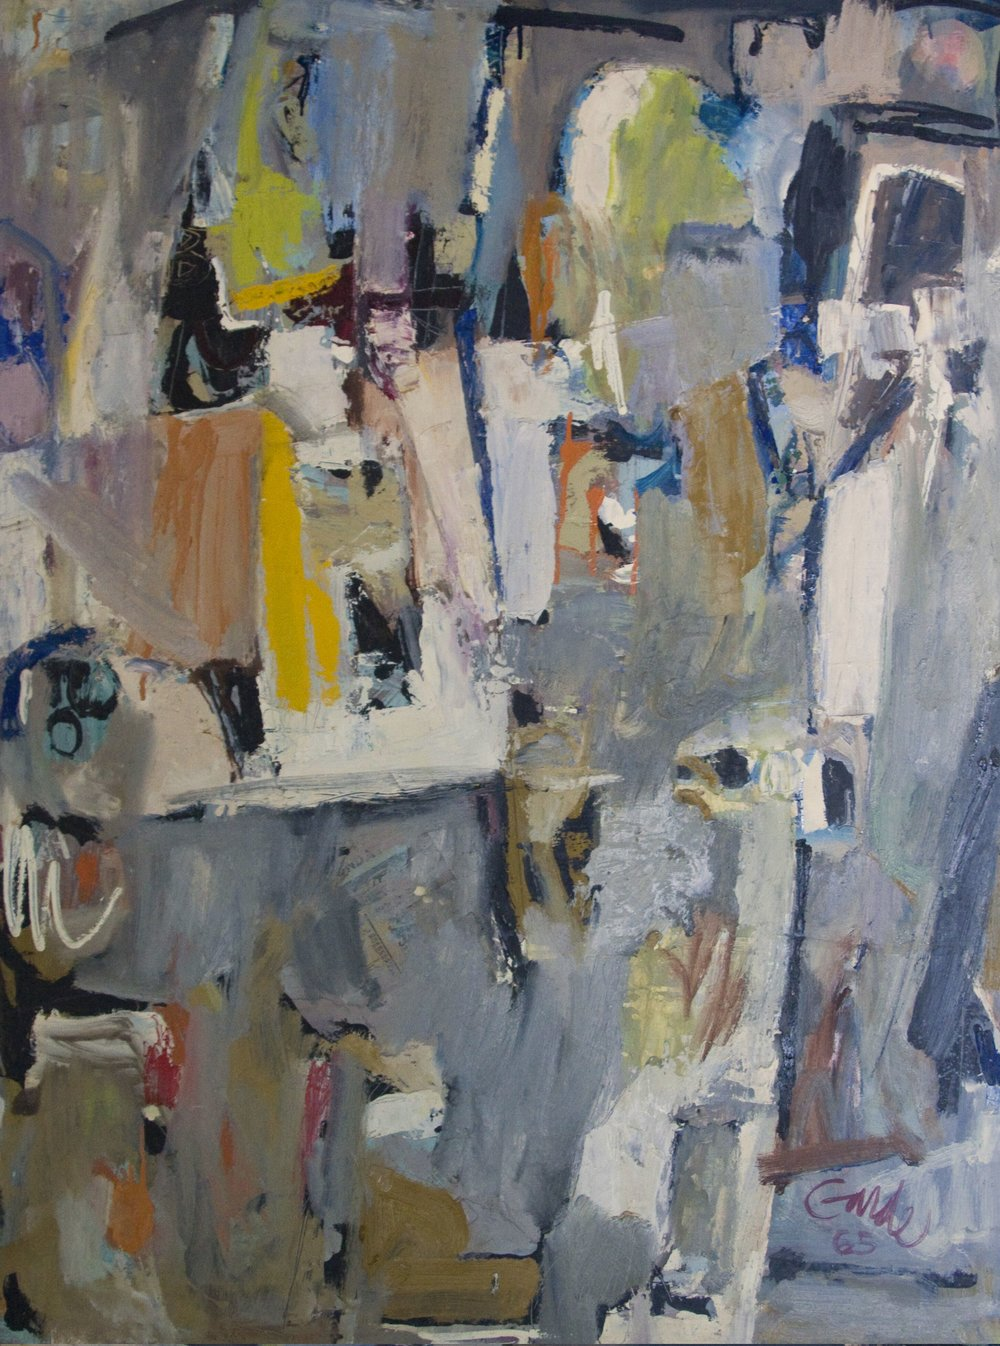 B Secret , 1965. Oil on hardboard (masonite), 48 x 36 in. (122 x 91.4 cm.), Private Collection